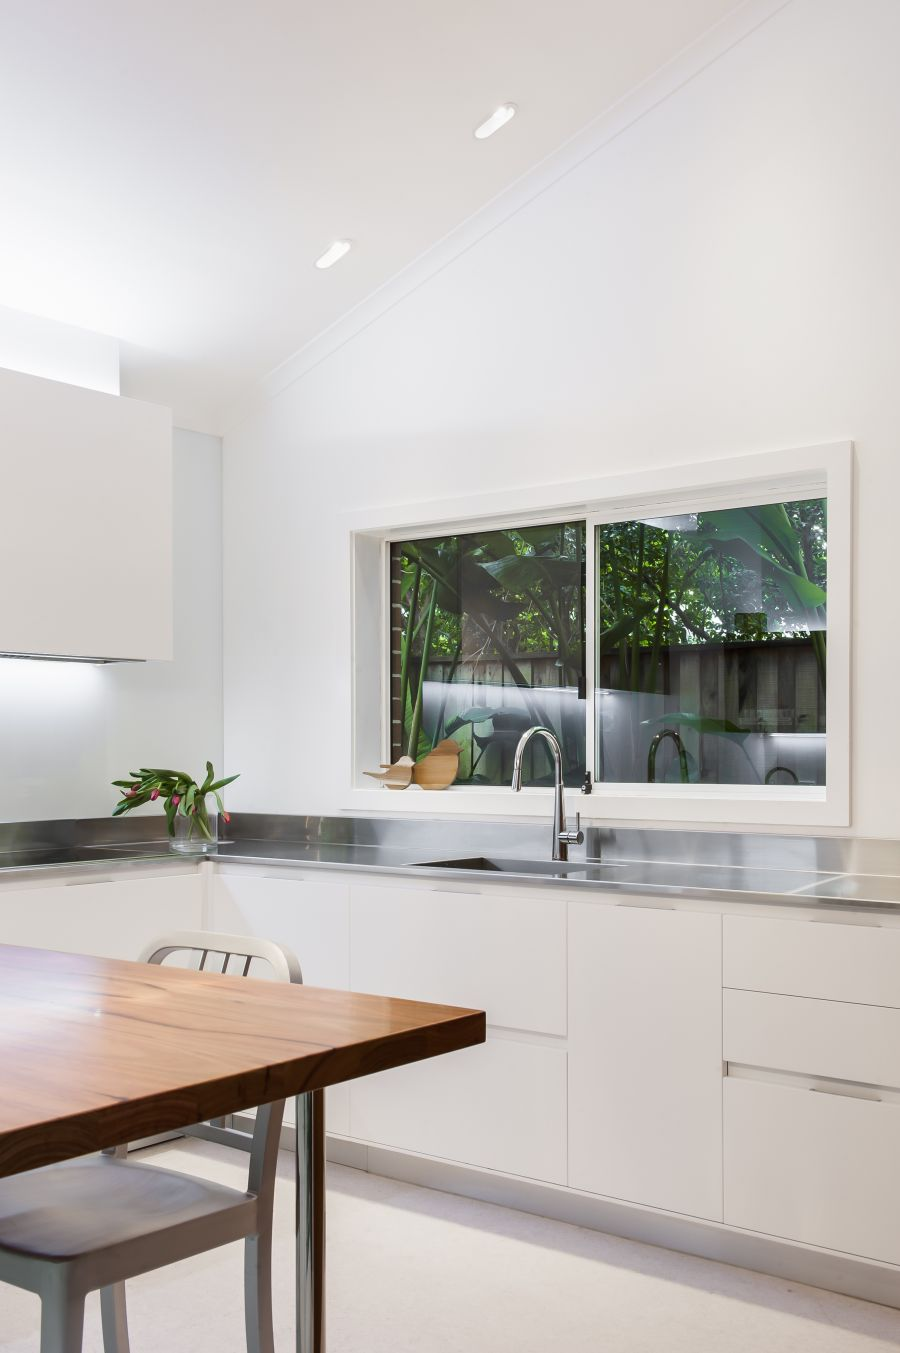 Renovated kitchen in NSW, Australia